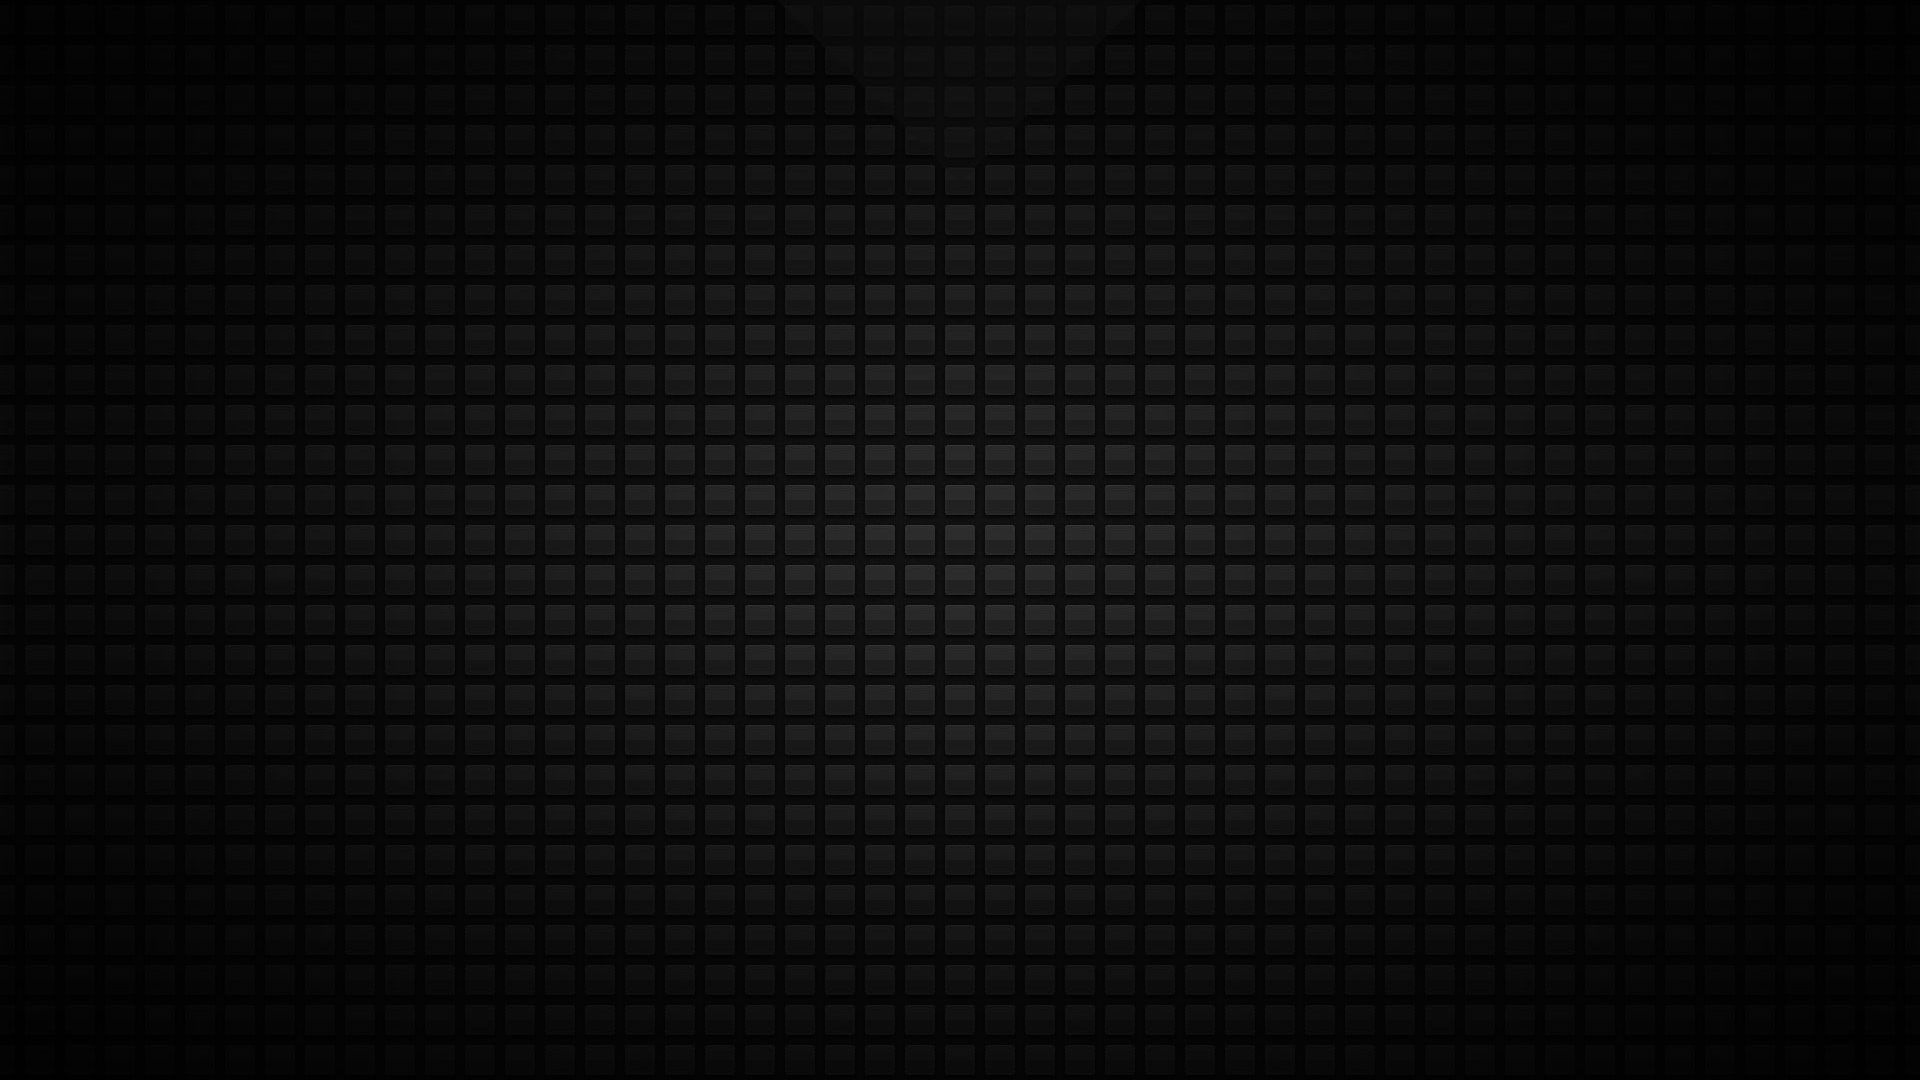 1920x1080 - Dark Grey Wallpapers 31